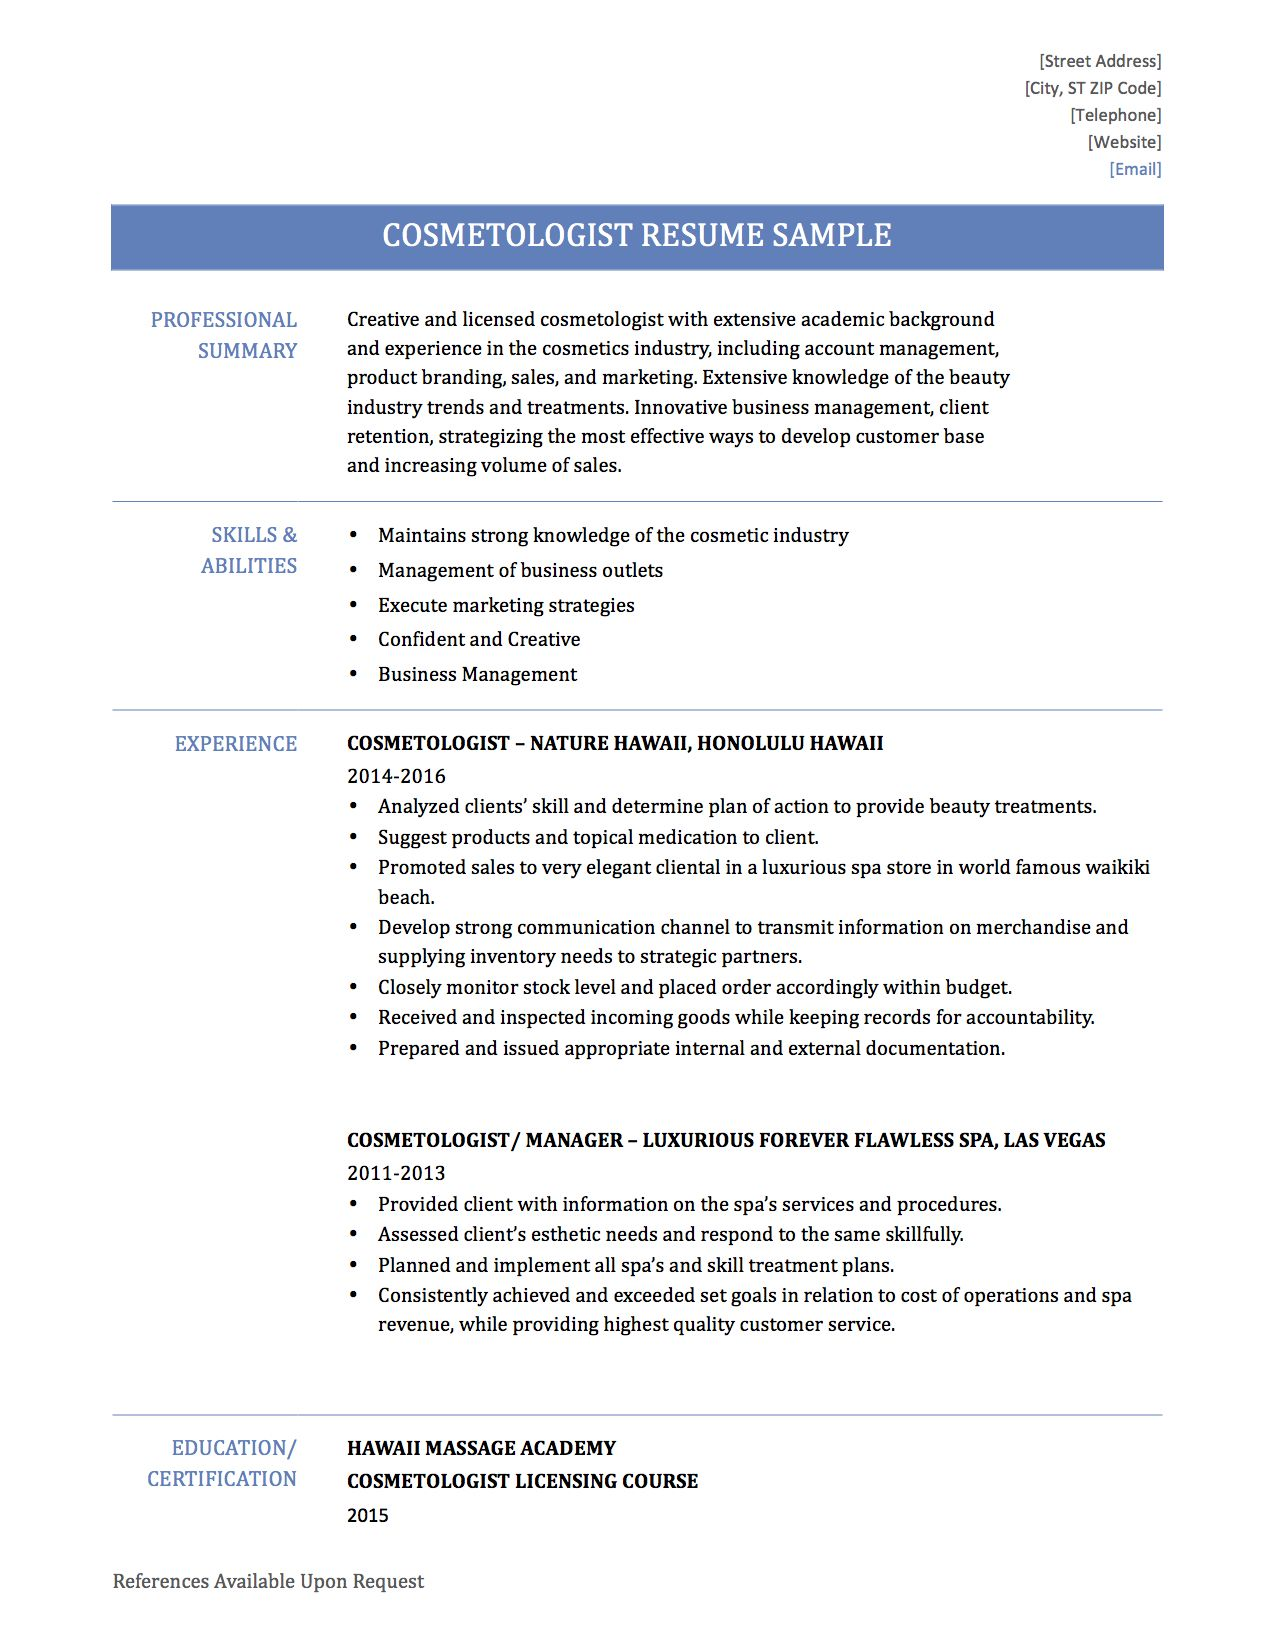 Sales Accountant Sample Resume Inspiration Resume Sample Cosmetologist Cosmetology Objective Master  Resume .